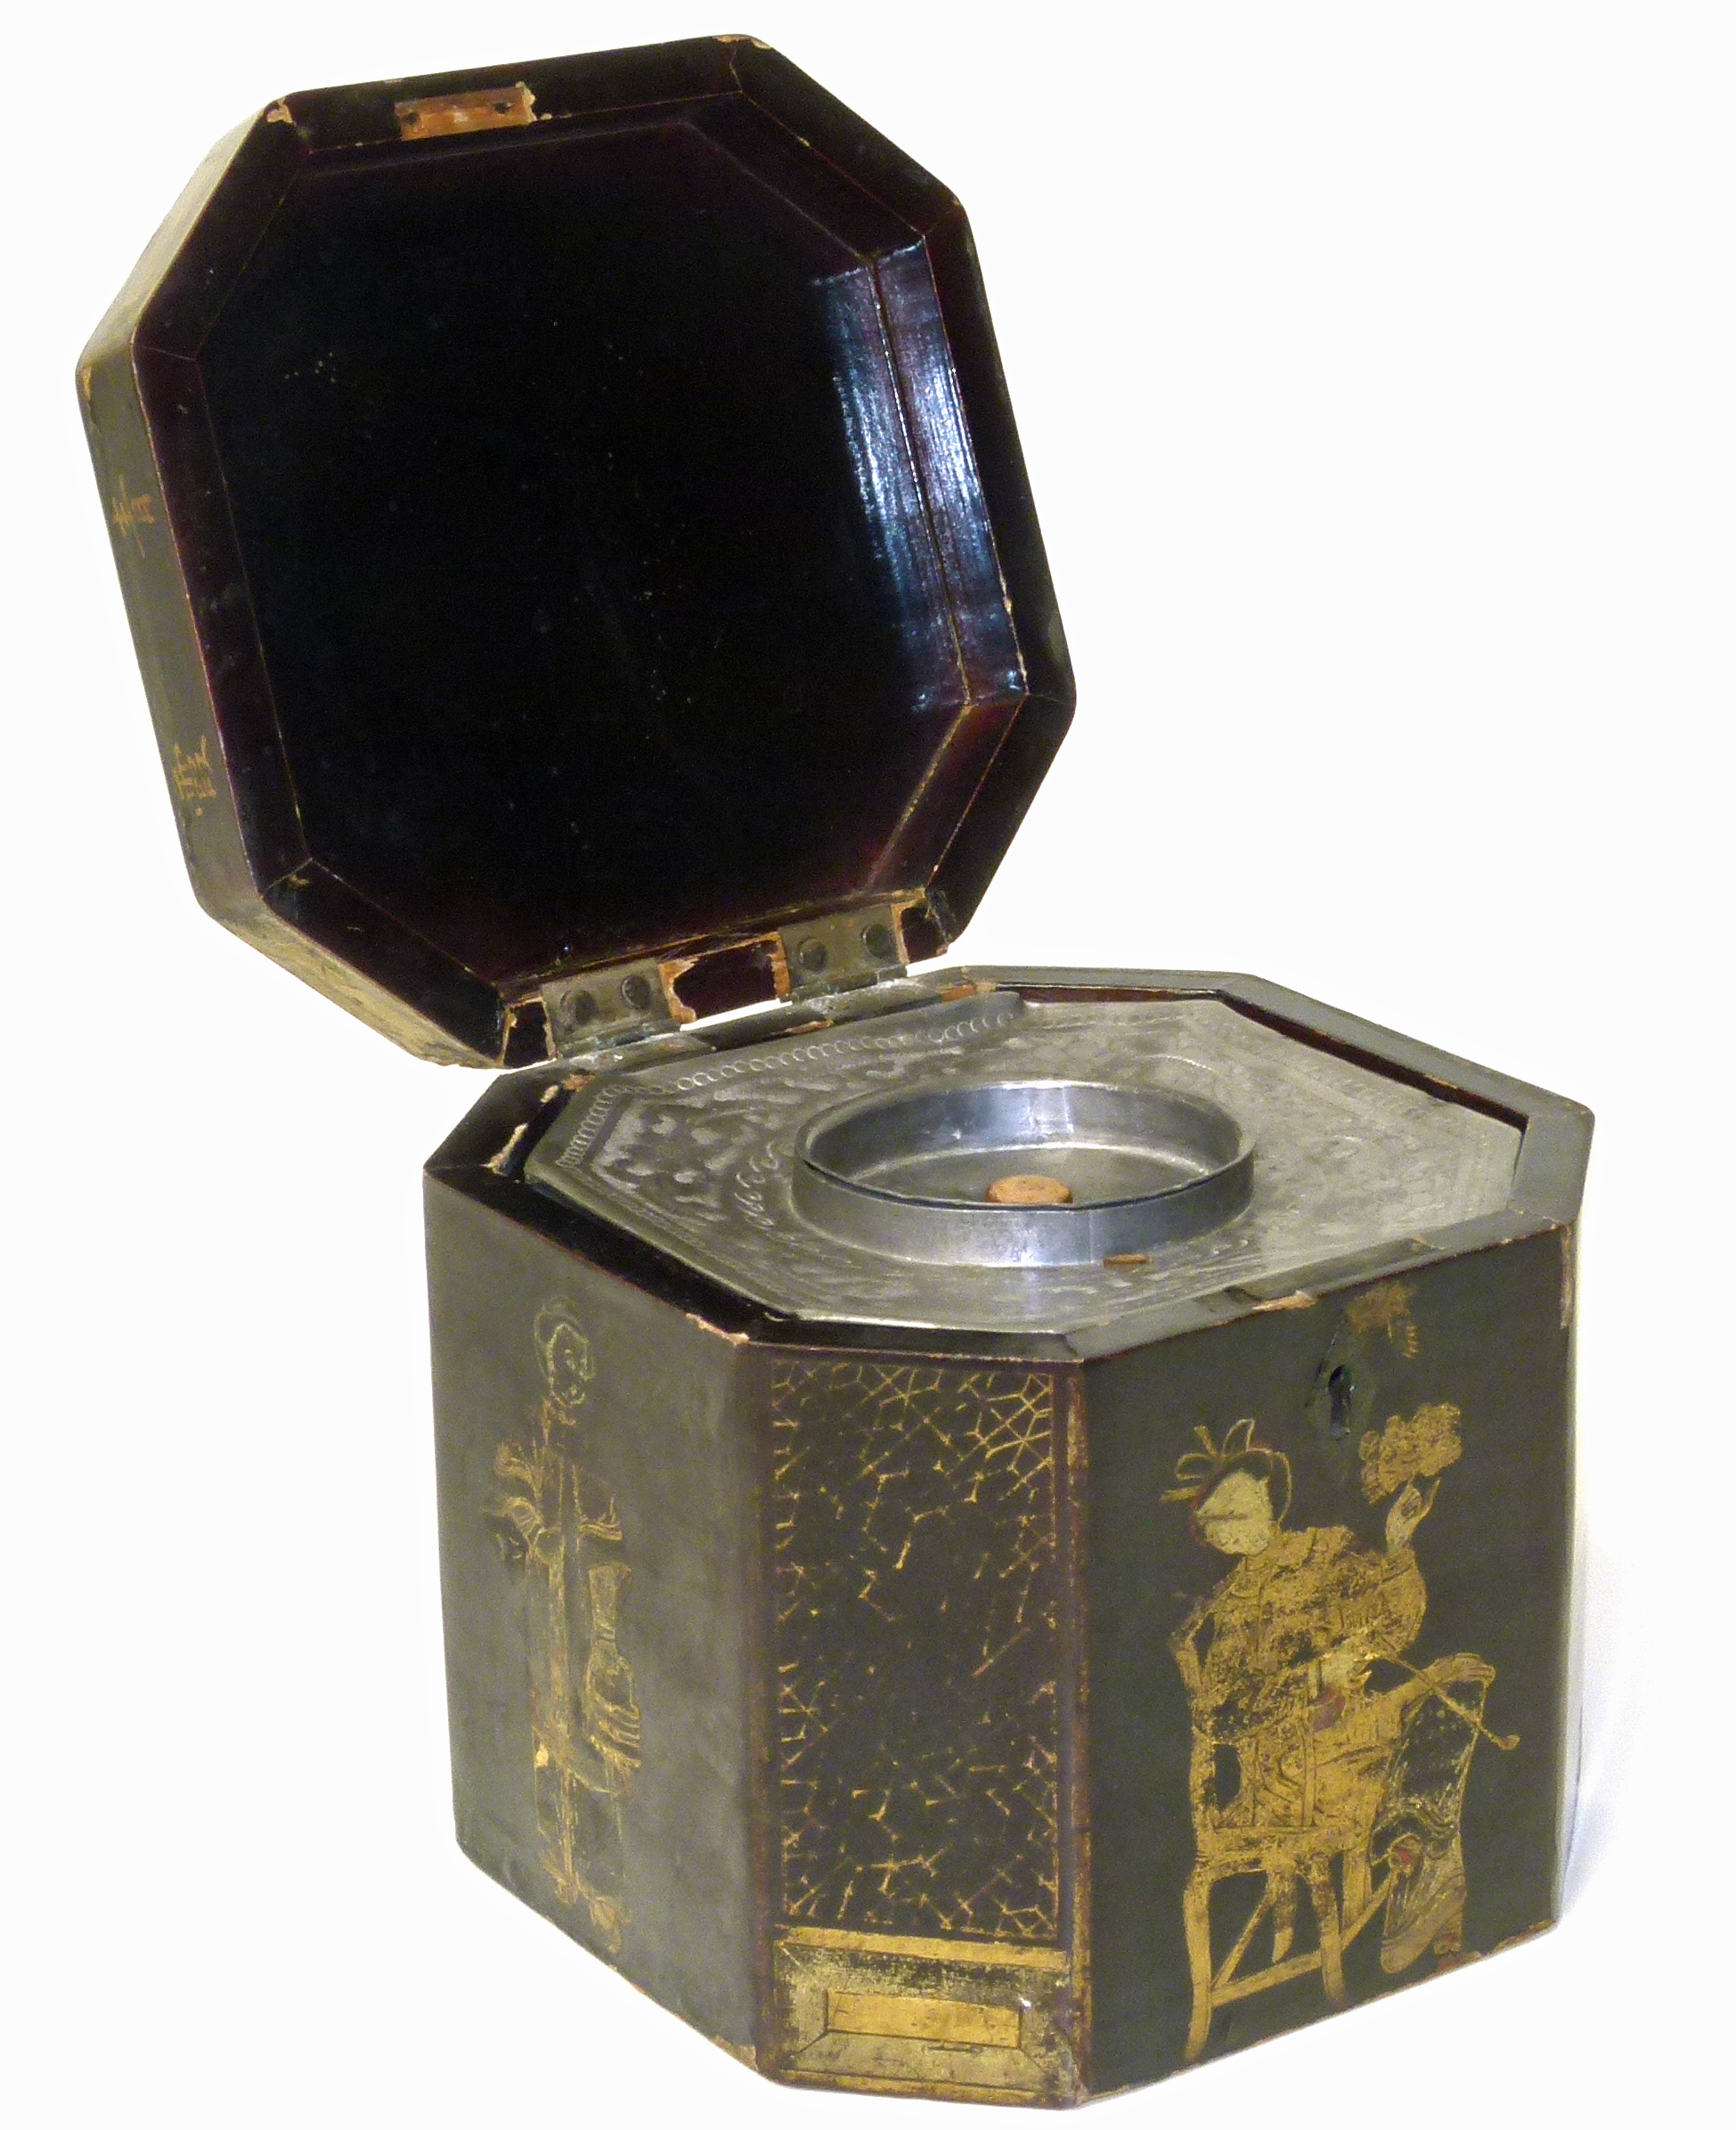 Lot 59 - 19th century lacquered lead lined tea caddy with gilt decorations depicting oriental figure We are